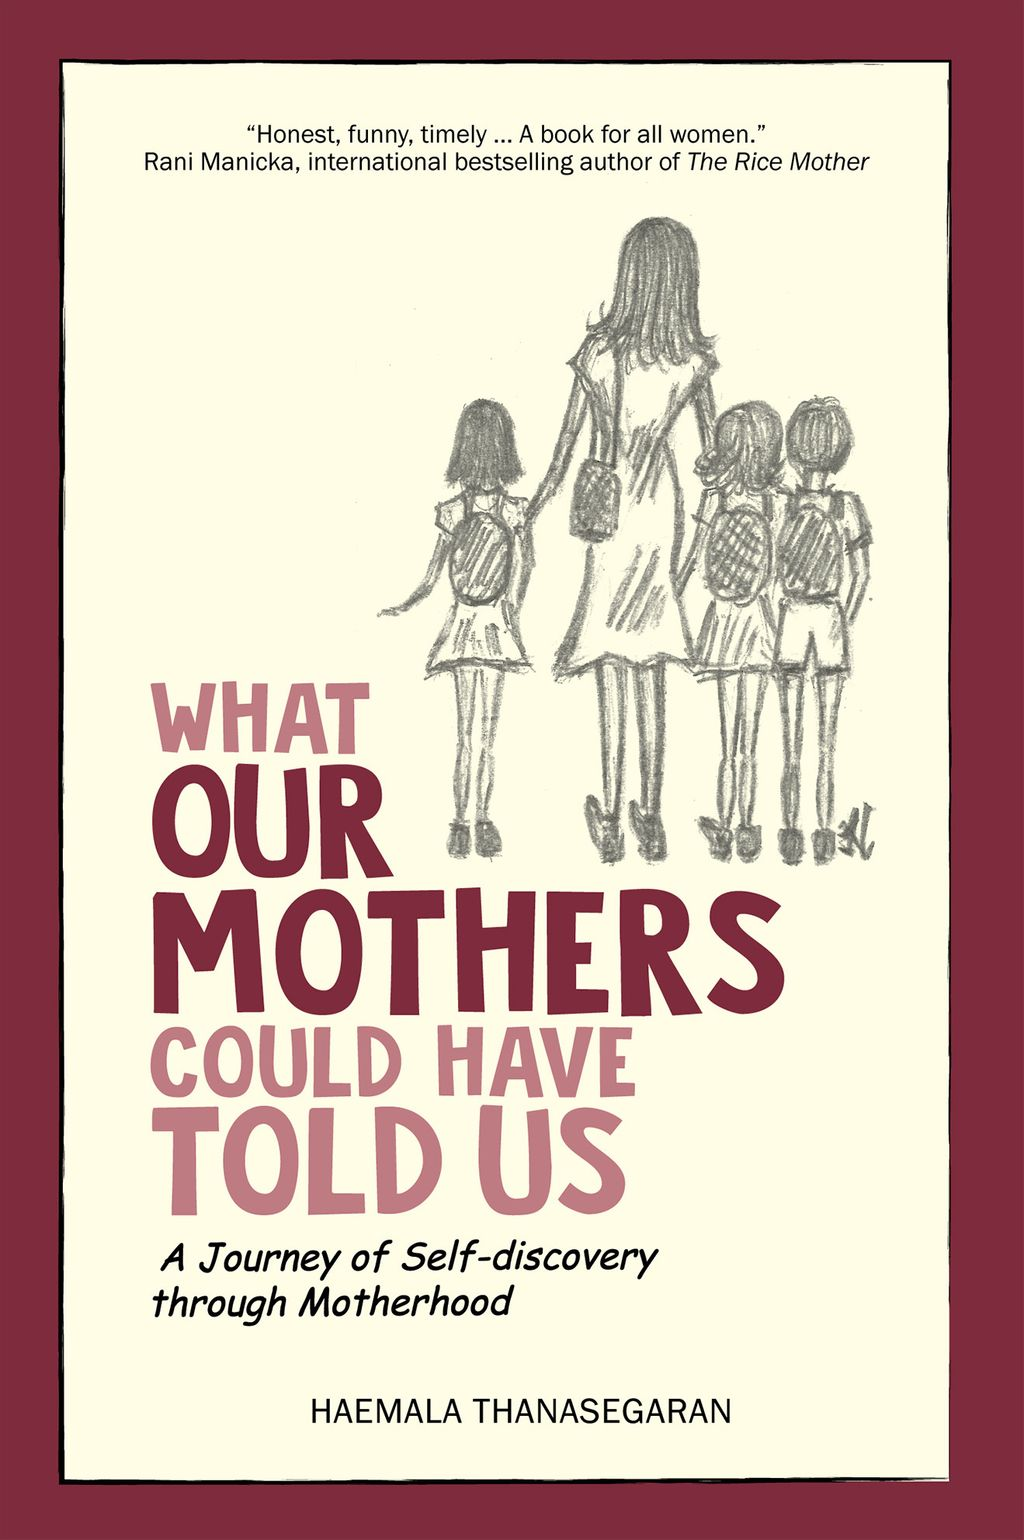 What Our Mothers Could have Told Us.jpg